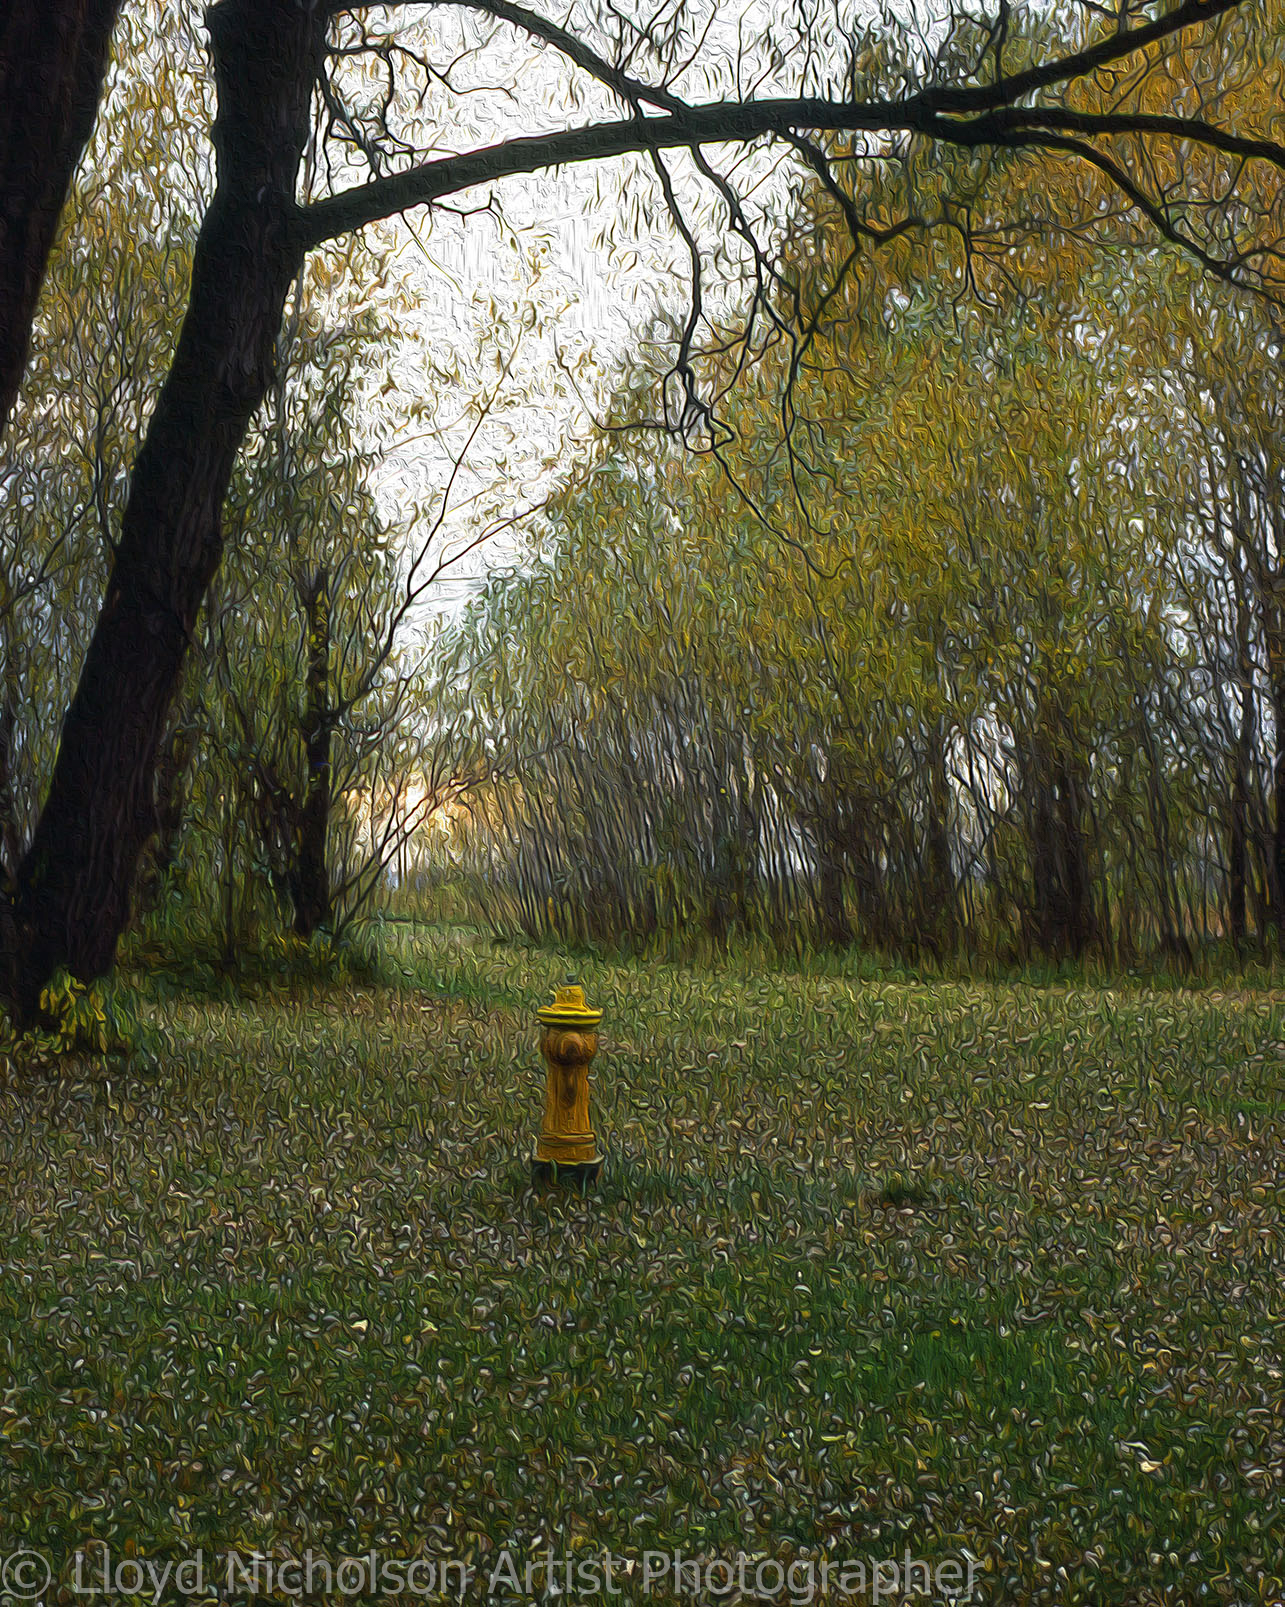 The Lonely Fire Hydrant